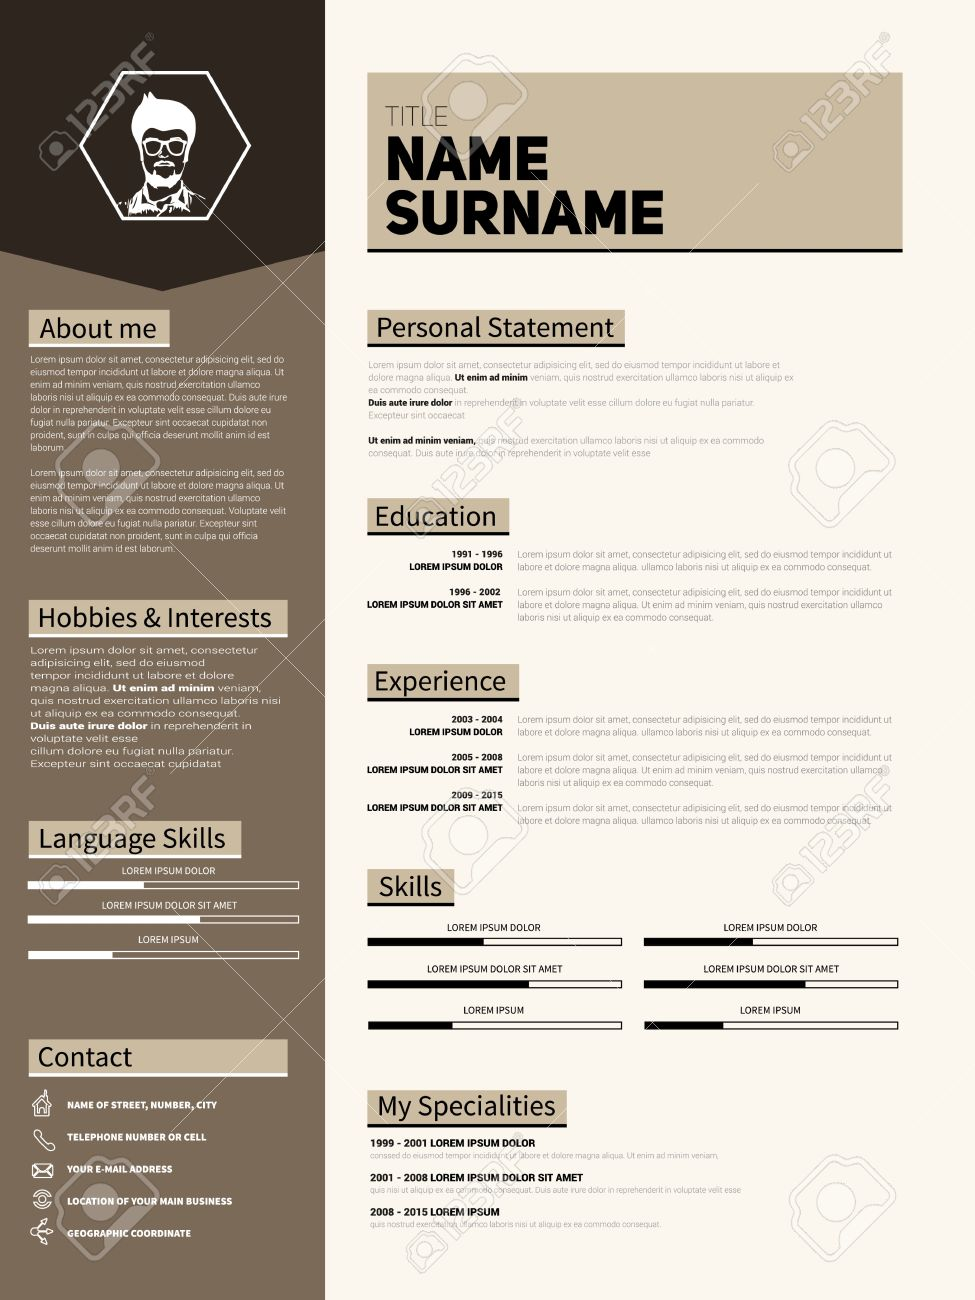 minimalist cv resume template with simple design stock vector 46955612. Resume Example. Resume CV Cover Letter